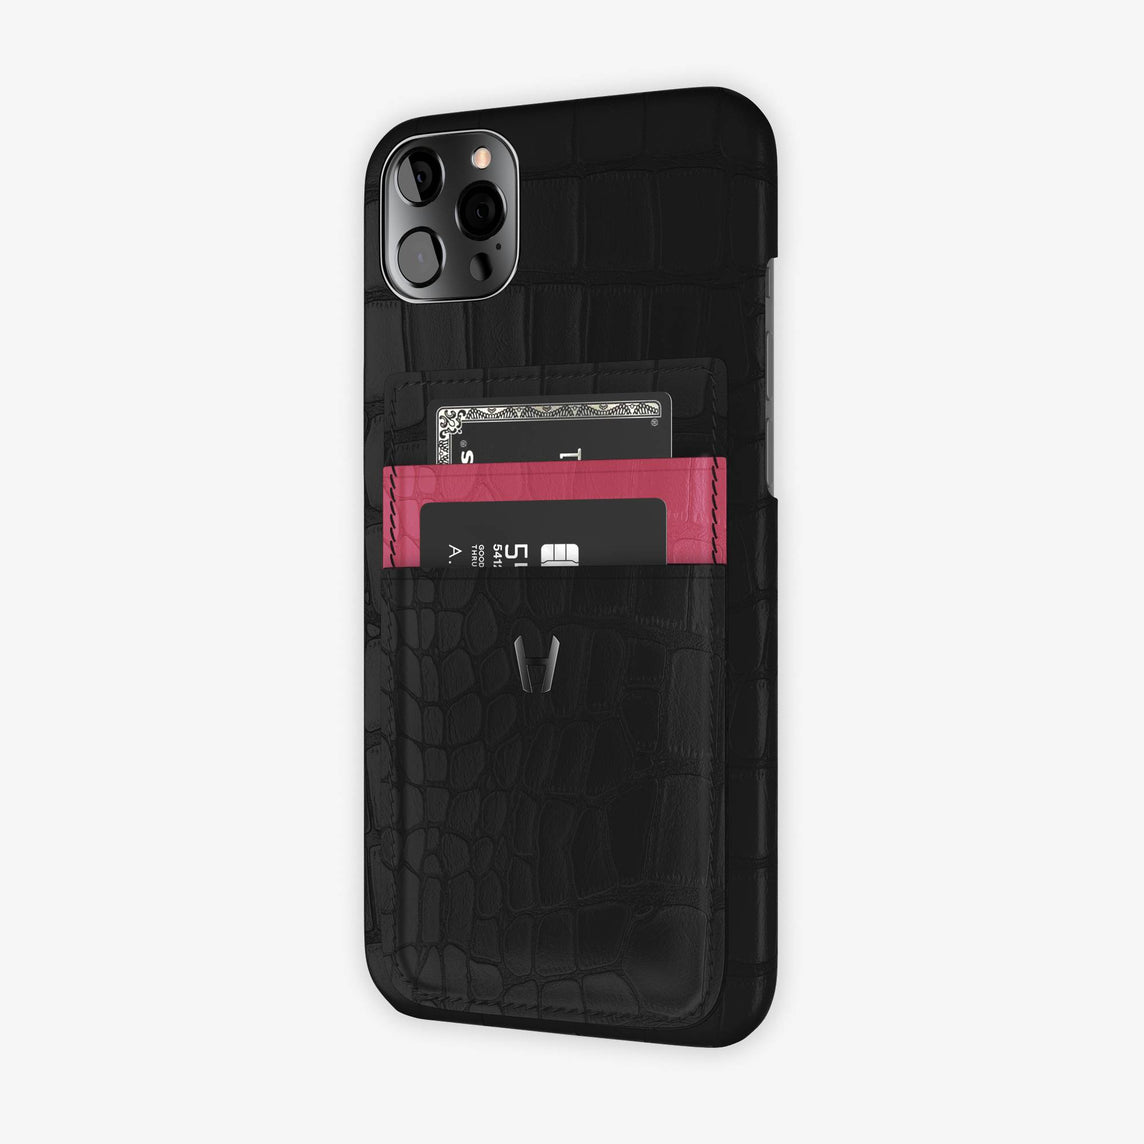 iPhone 12 Pro Max | Black/Pink Girly - Black